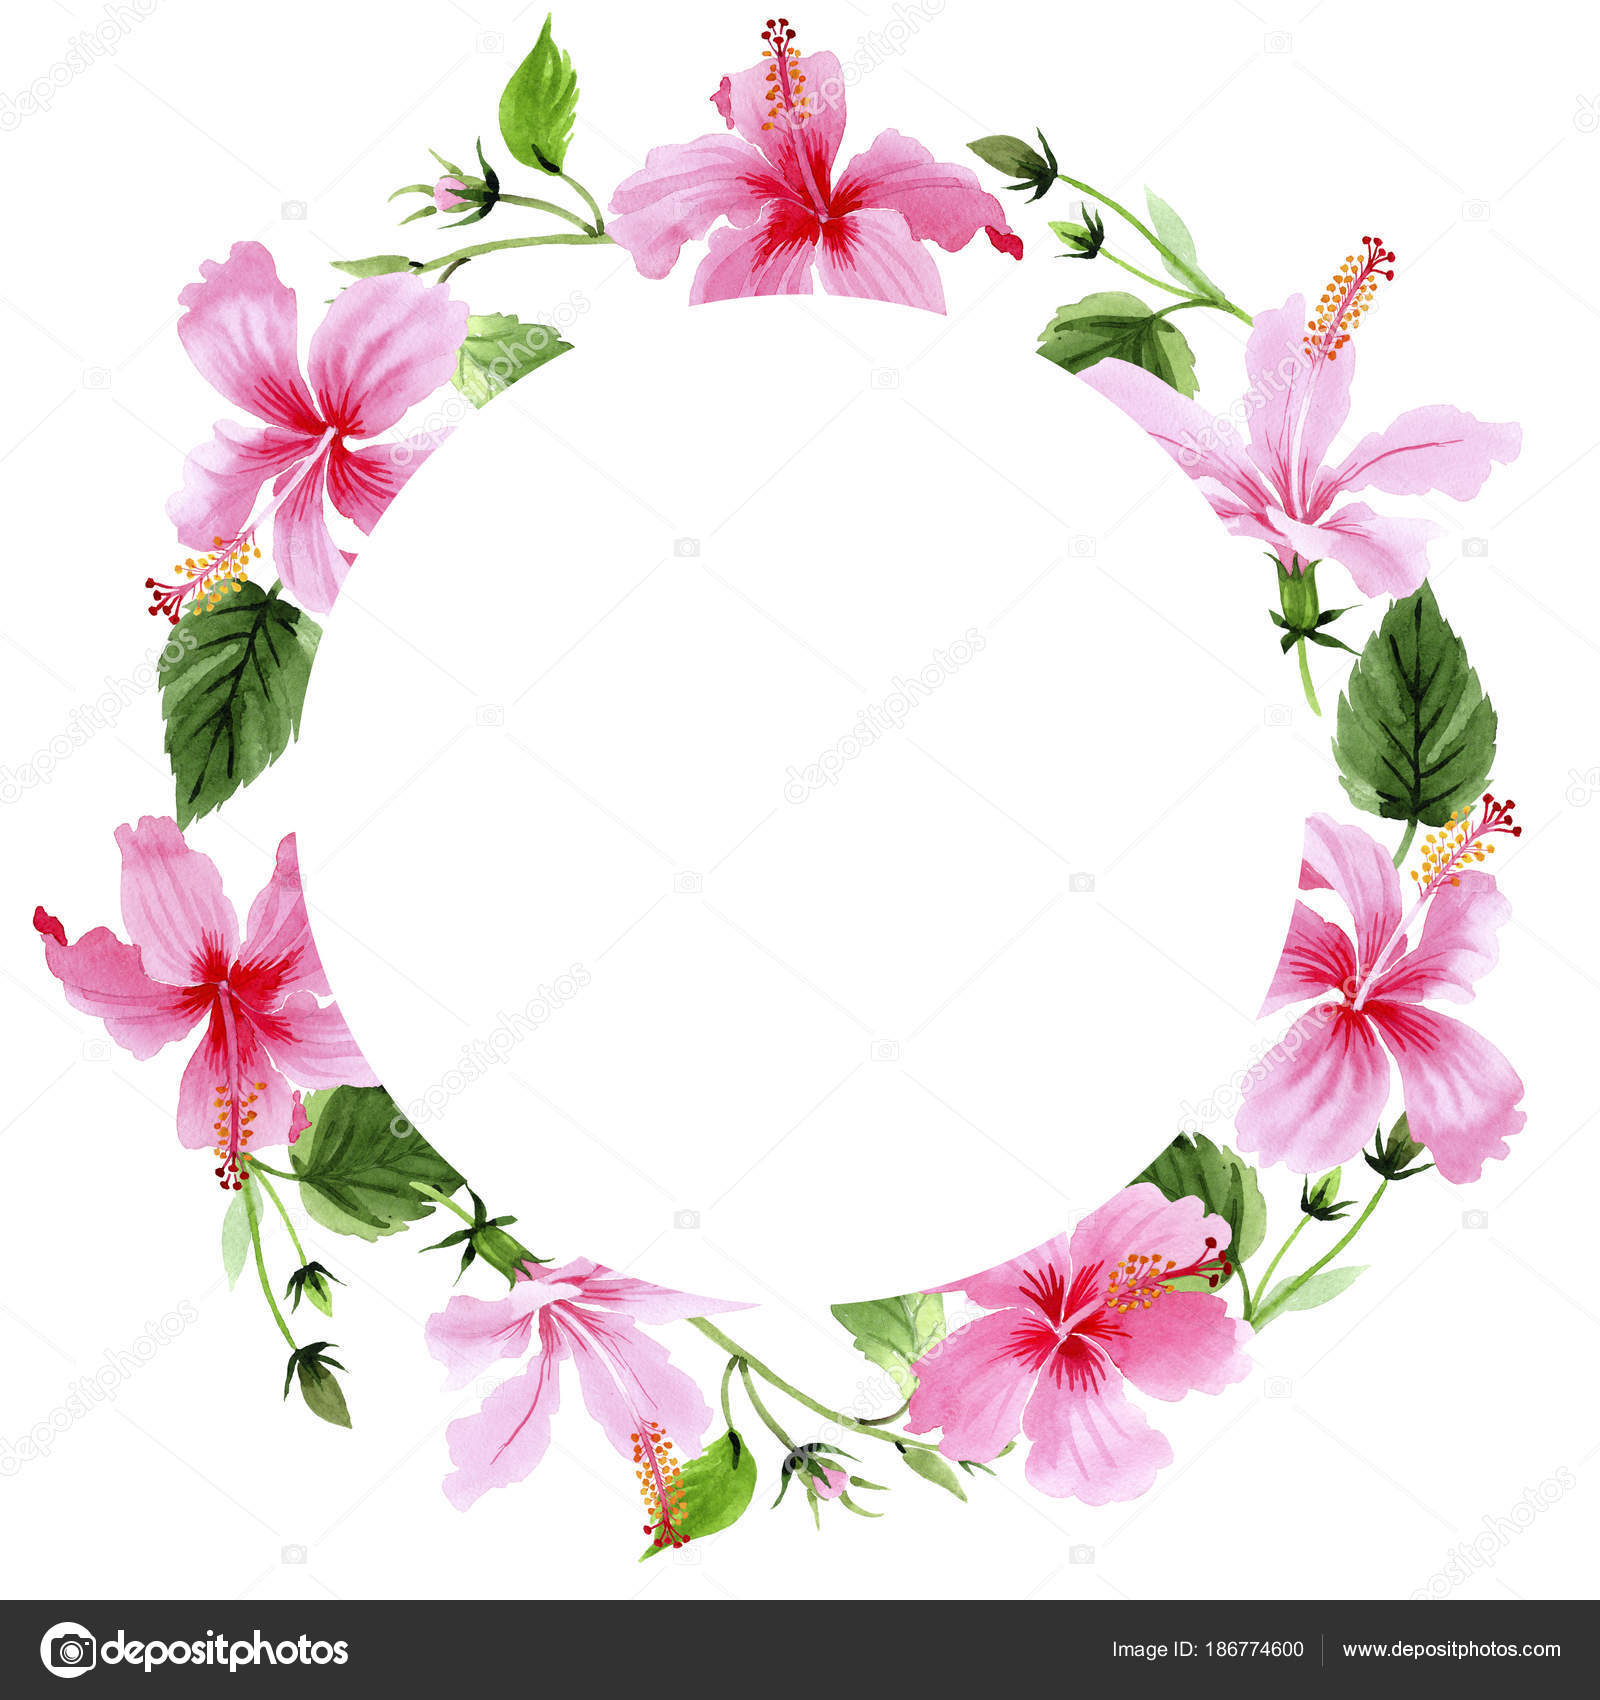 Wildflower Hibiscus Pink Flower Wreath In A Watercolor Style